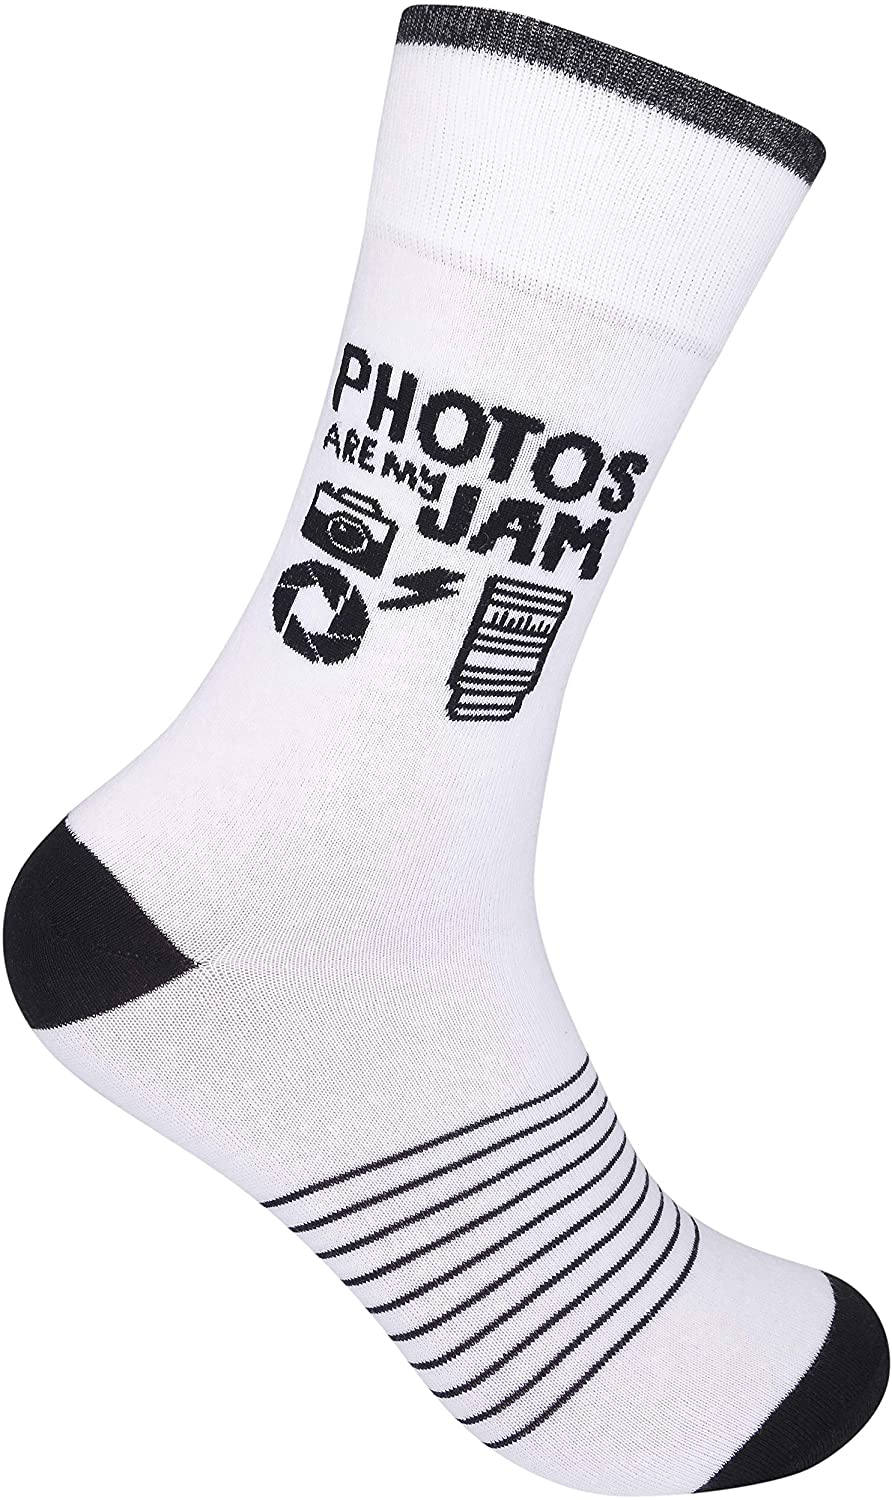 Photos Are My Jam Novelty Crew Socks | Original Unisex Funny Photographer Appreciation Day Gift Apparel for Men Women Adult | Best Photography, Camera, and Pic Lover Word Present | One Size Fits Most